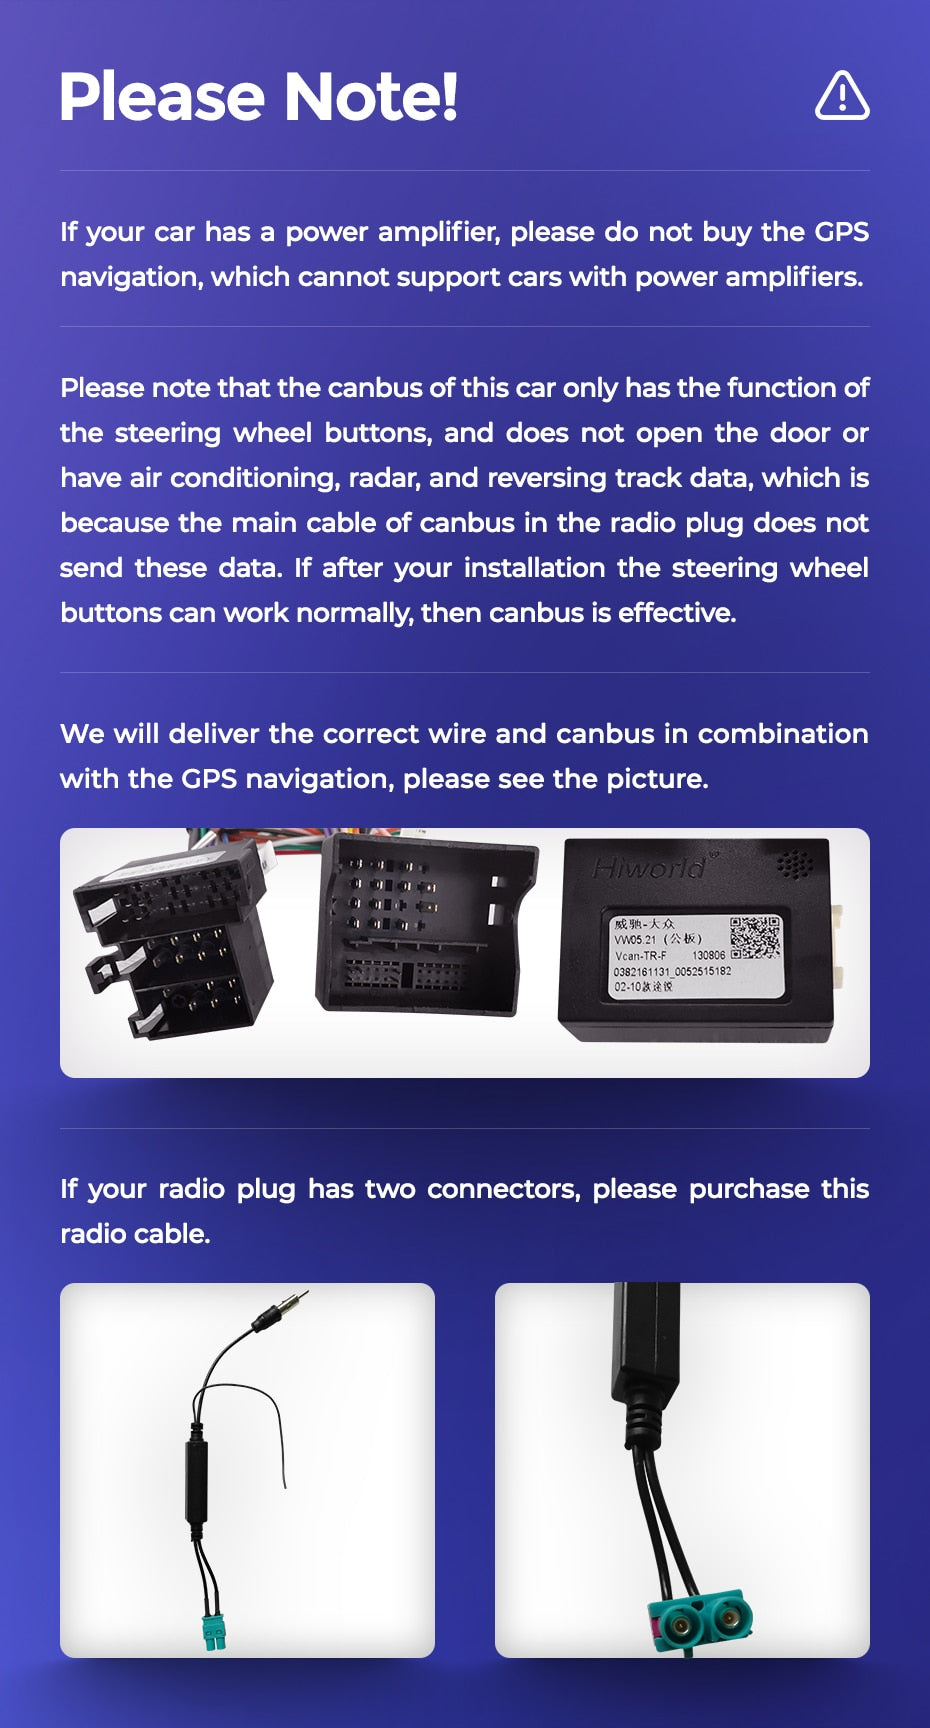 Amplifier canbus warning